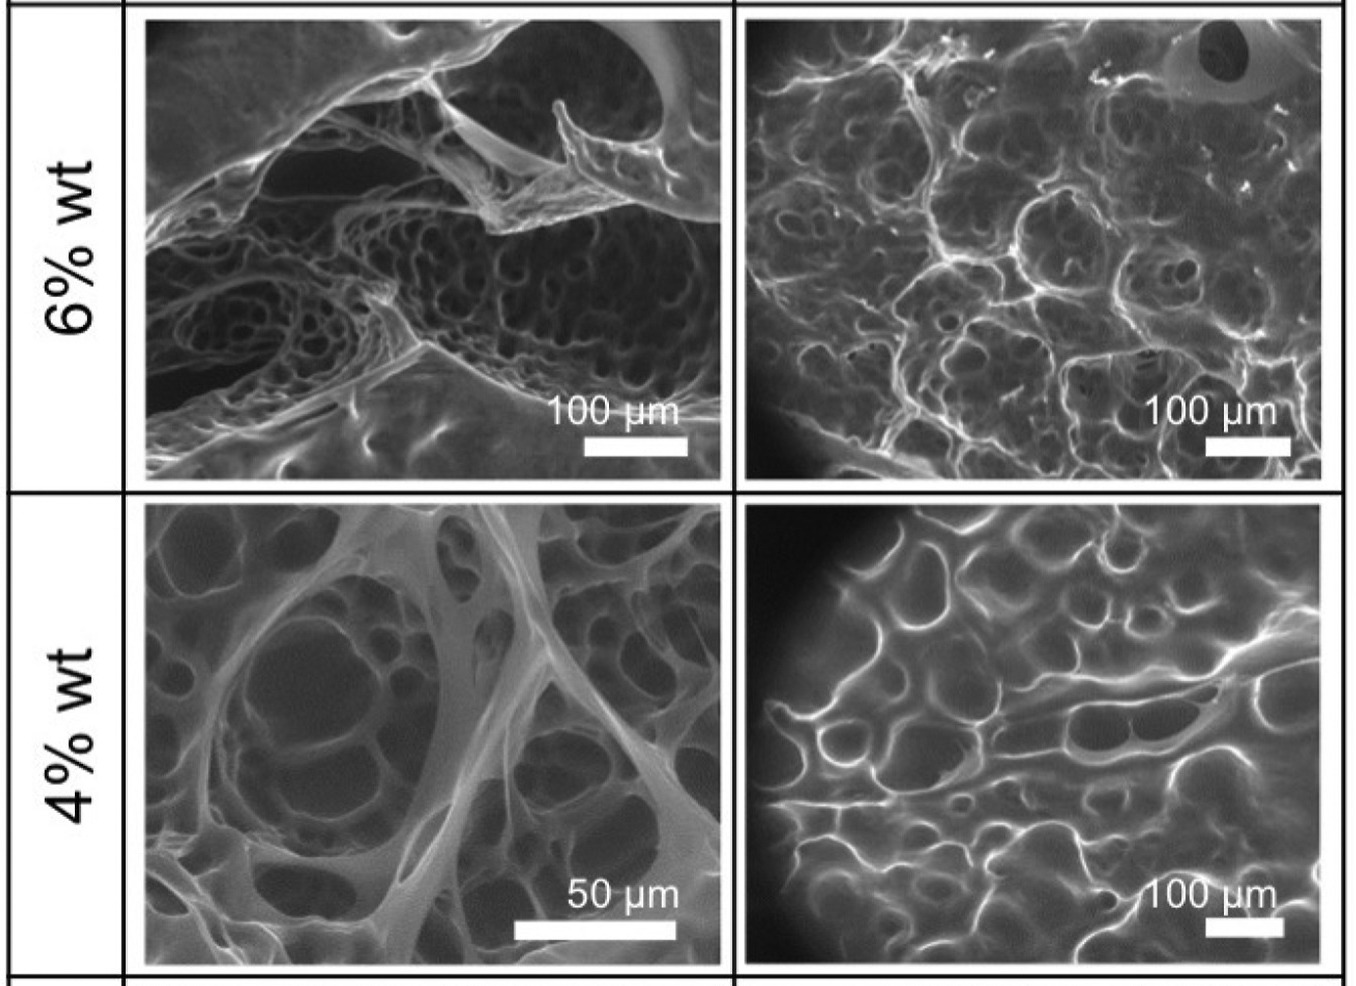 The researchers' tests revealed that higher ECM porosity corresponded with lower rates of cell proliferation. Image via the Biomaterials journal.